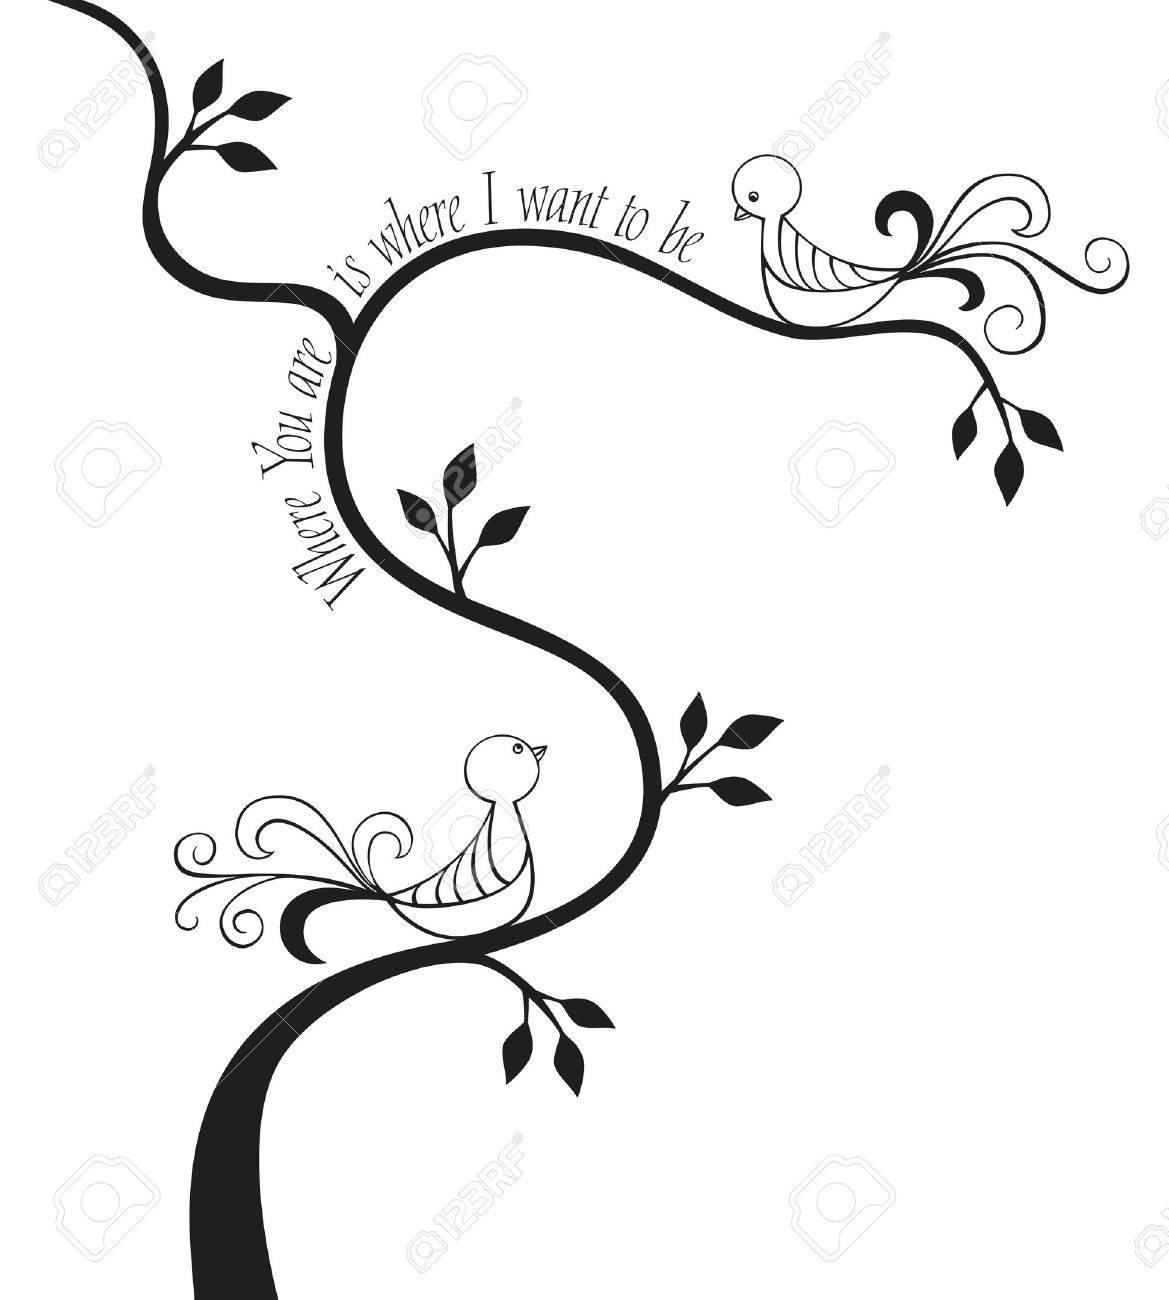 2 love birds in a tree with calligraphic text Stock Vector - 8870247